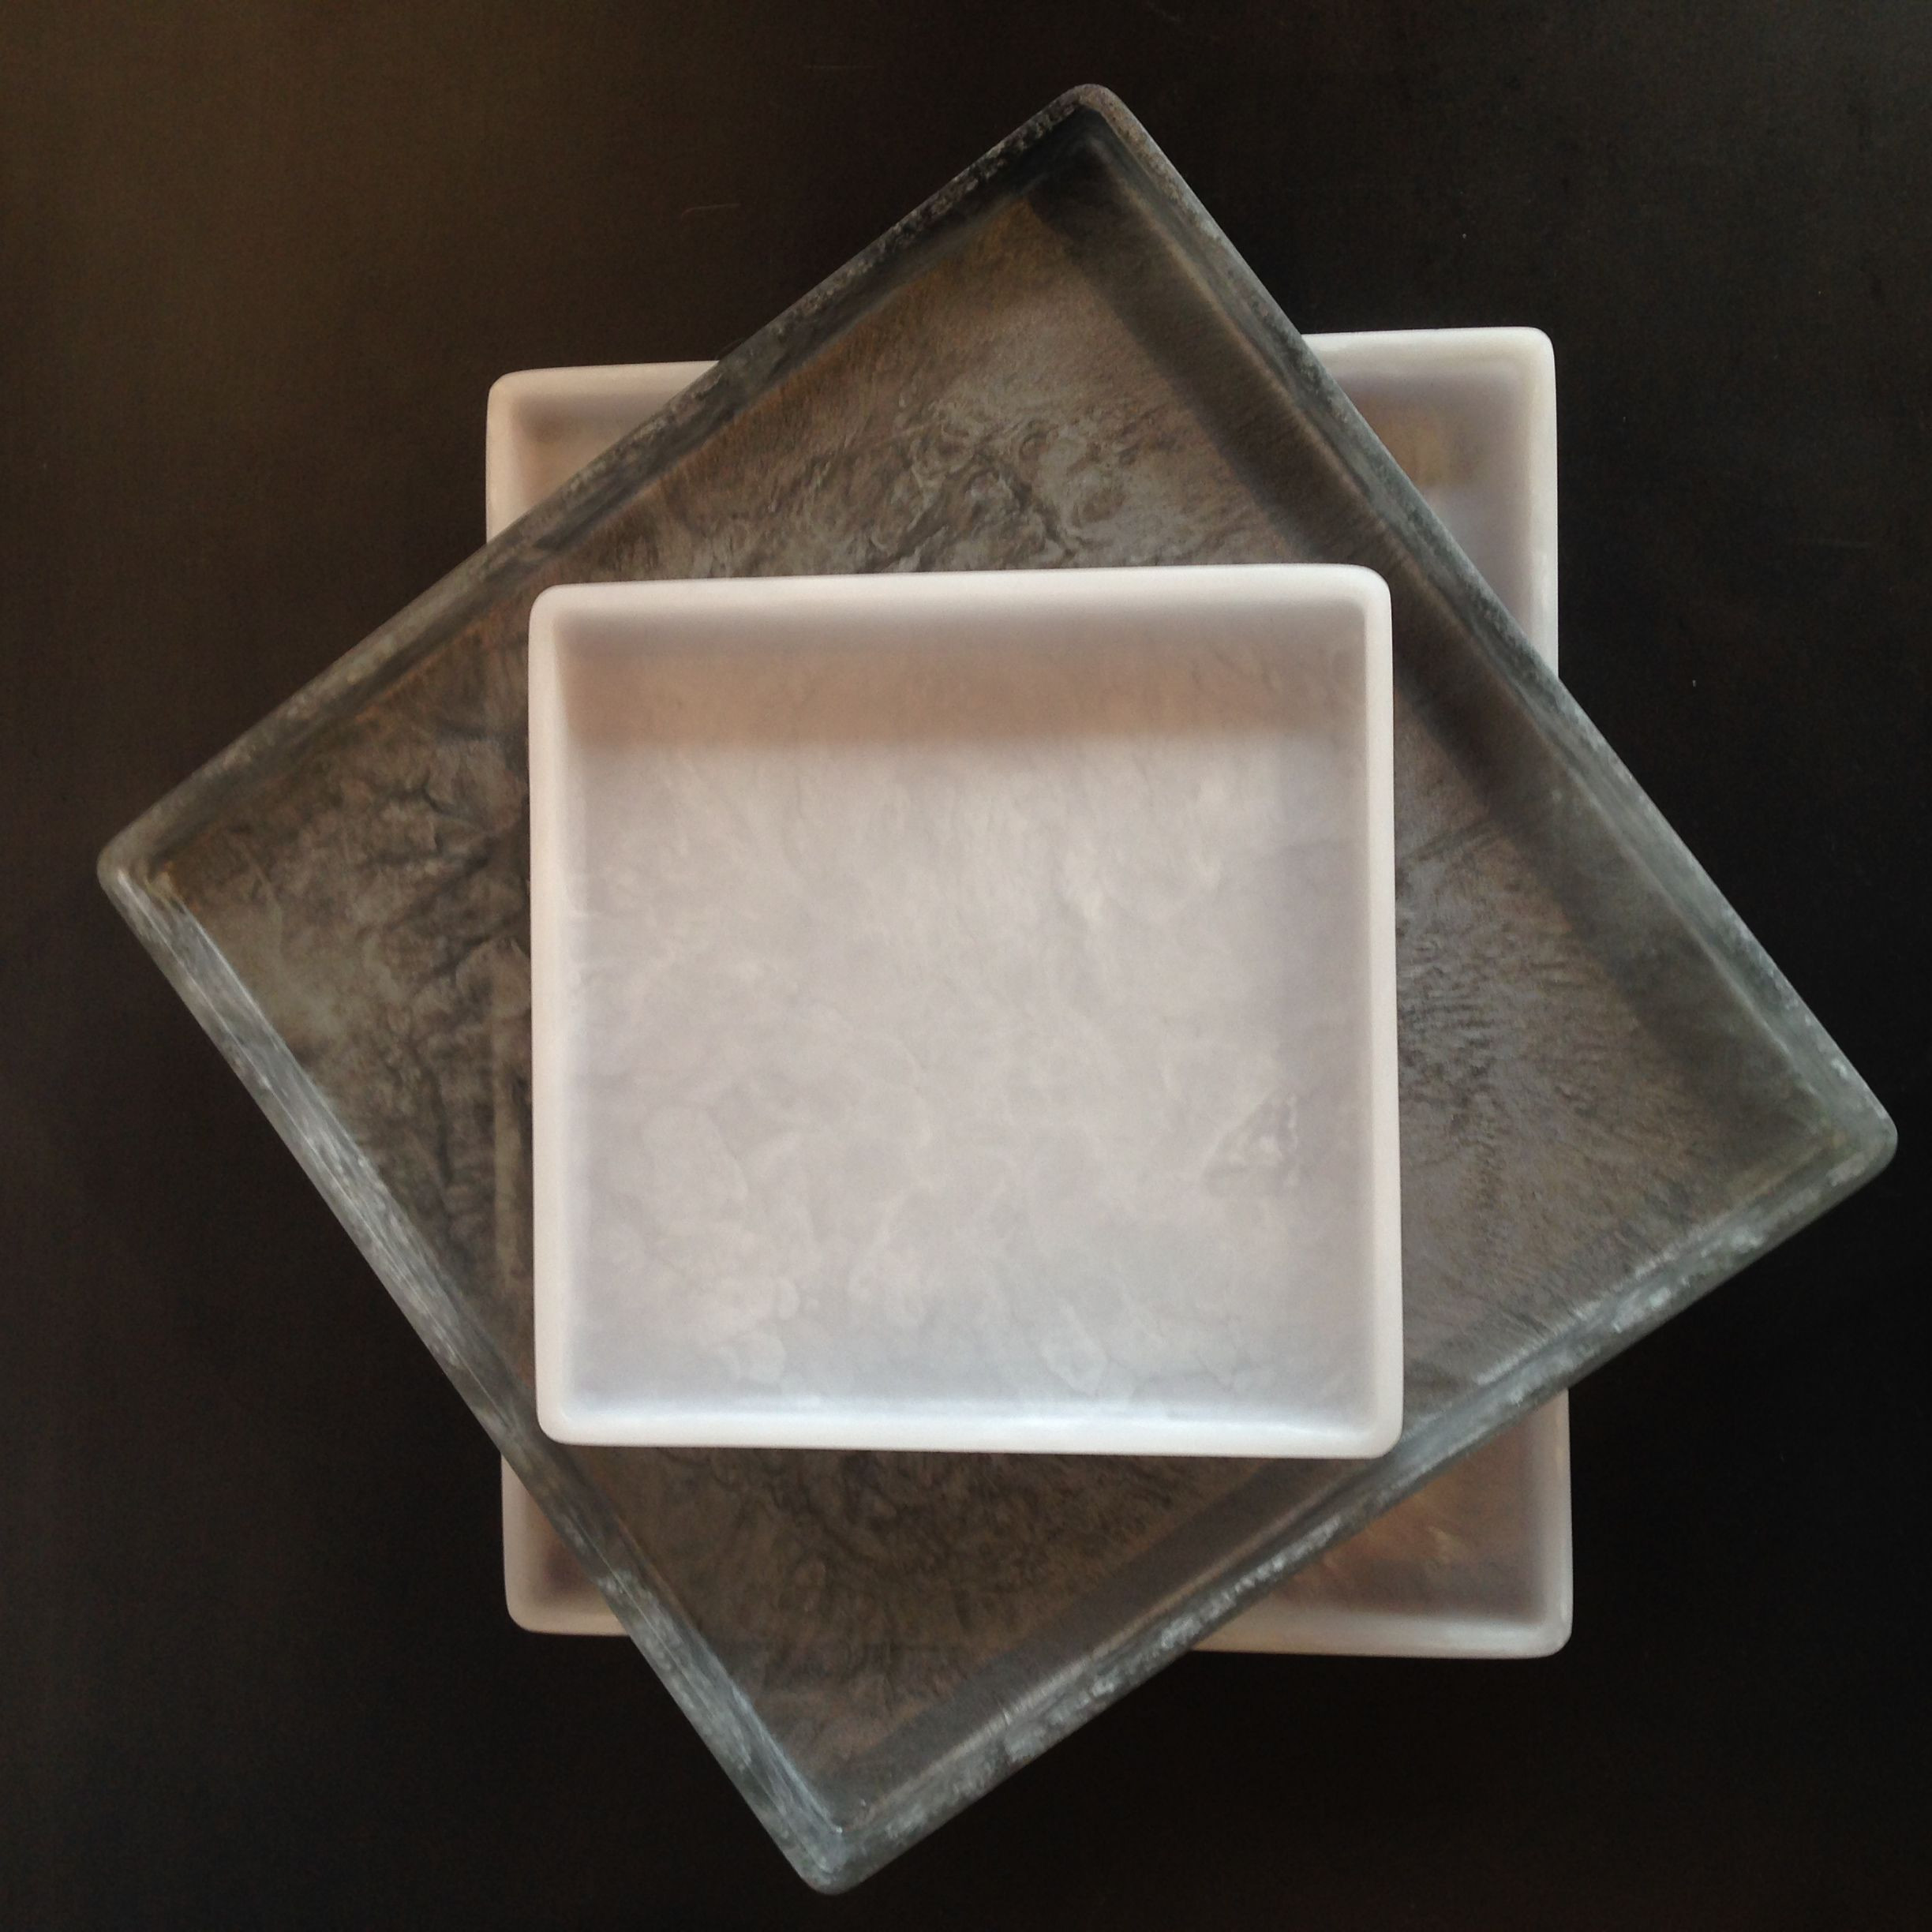 silver rectangle vase of martha sturdy trays in white marble and silver marble available at with regard to martha sturdy trays in white marble and silver marble available at the martha sturdy gallery